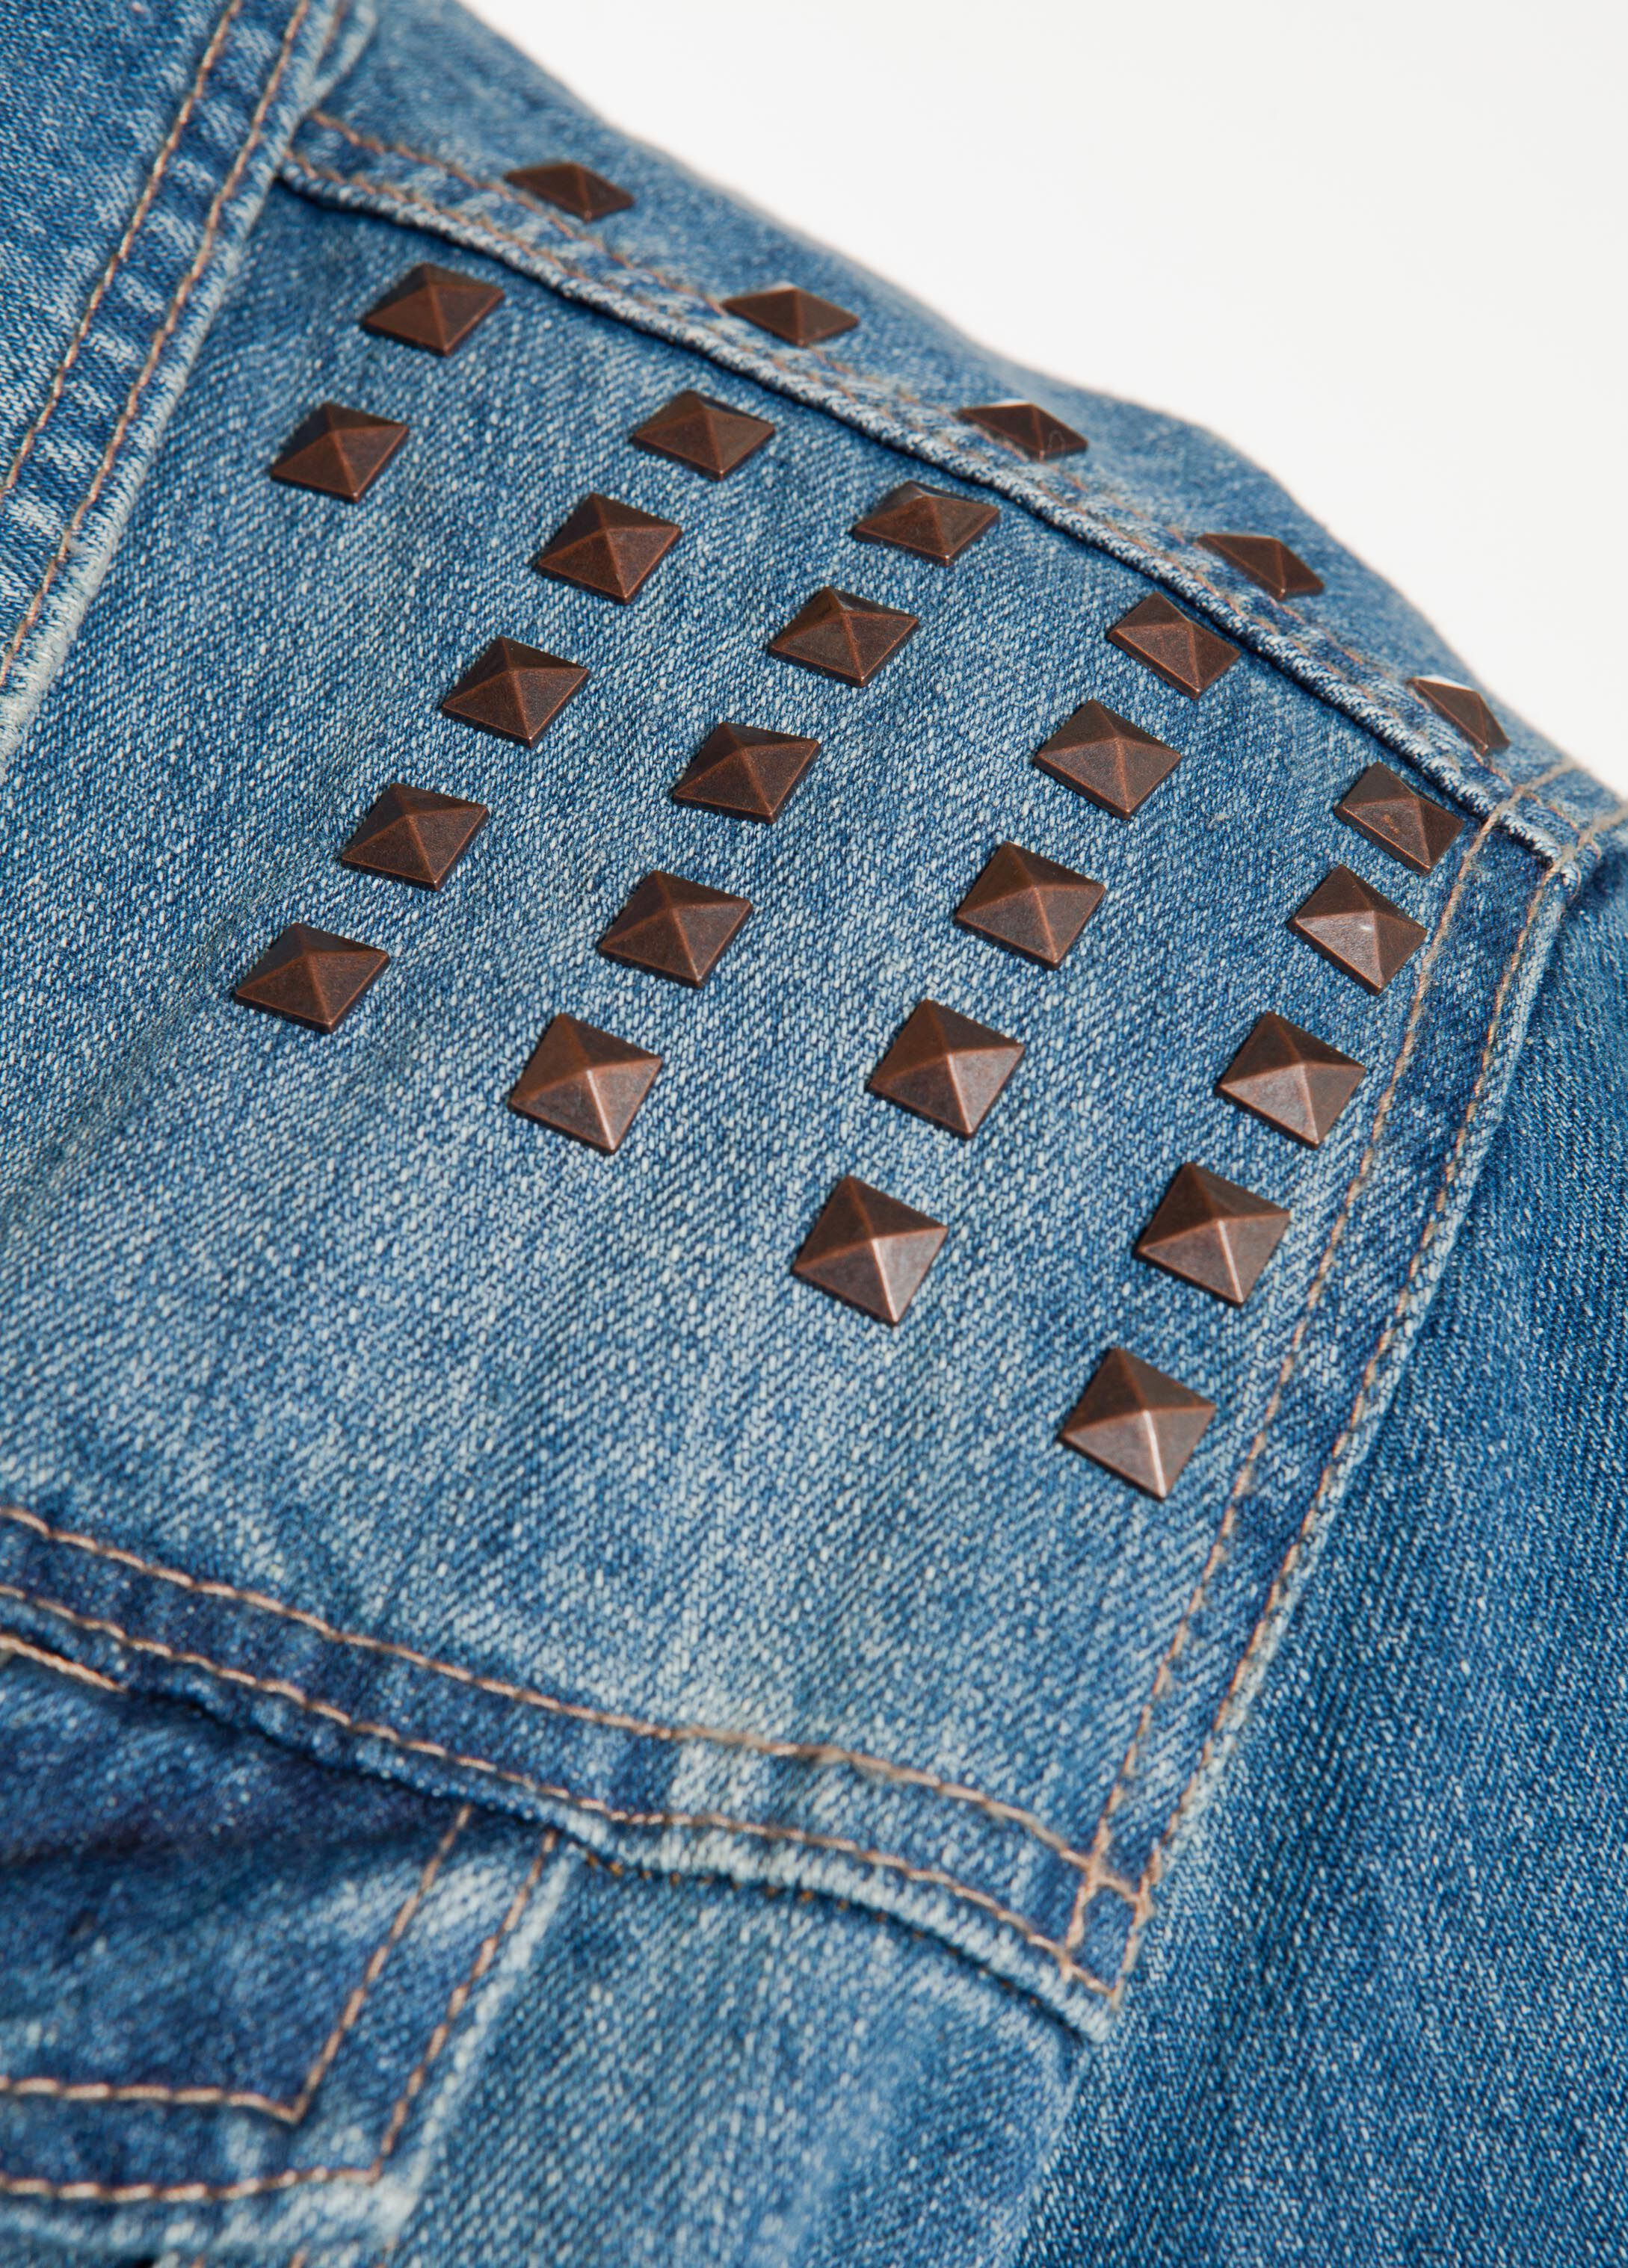 Studded Denim Jacket